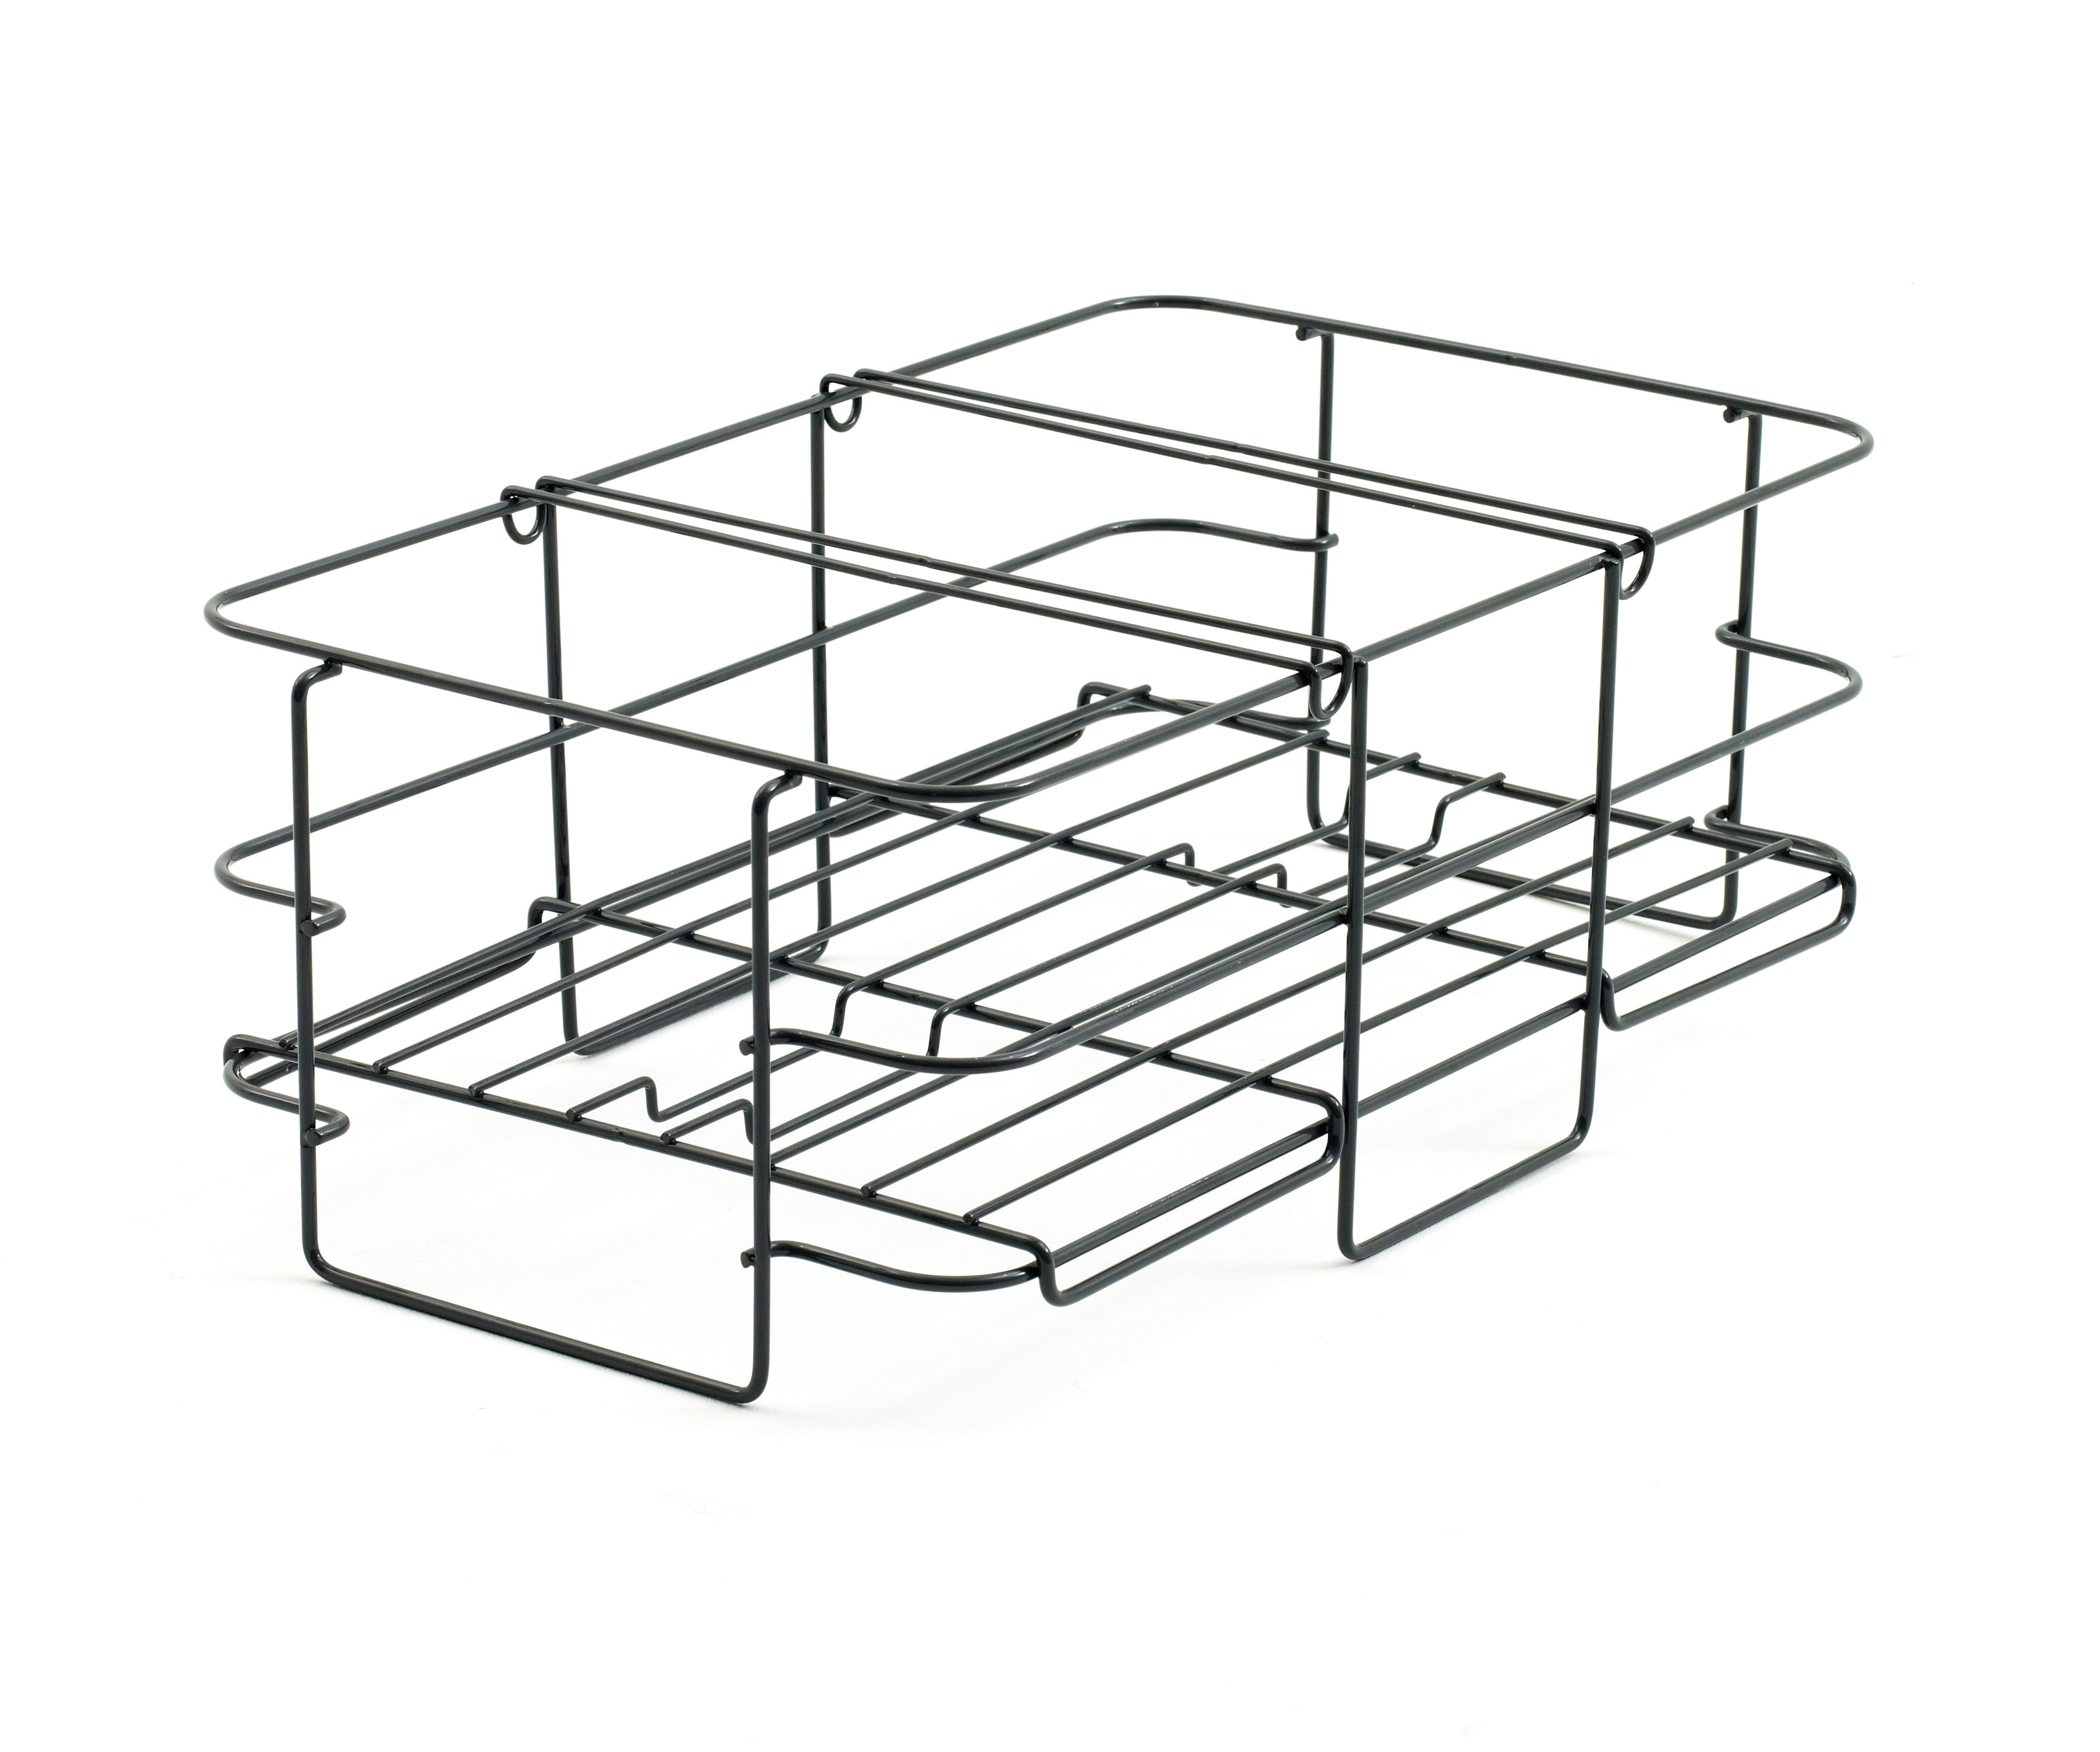 Metro MLW1 food holding & transport/insulated food carriers